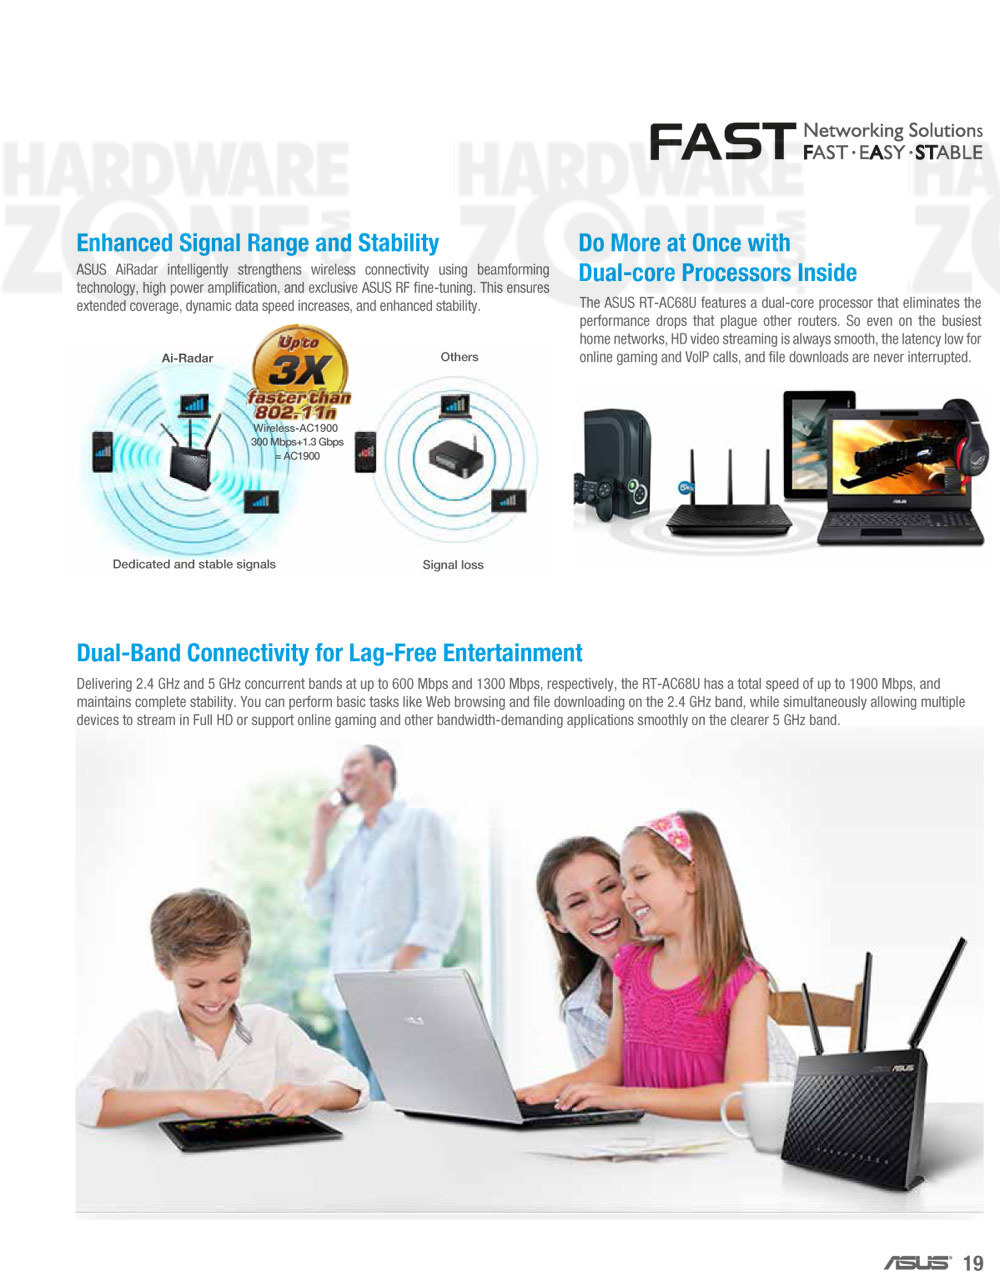 ASUS Networking - page 4